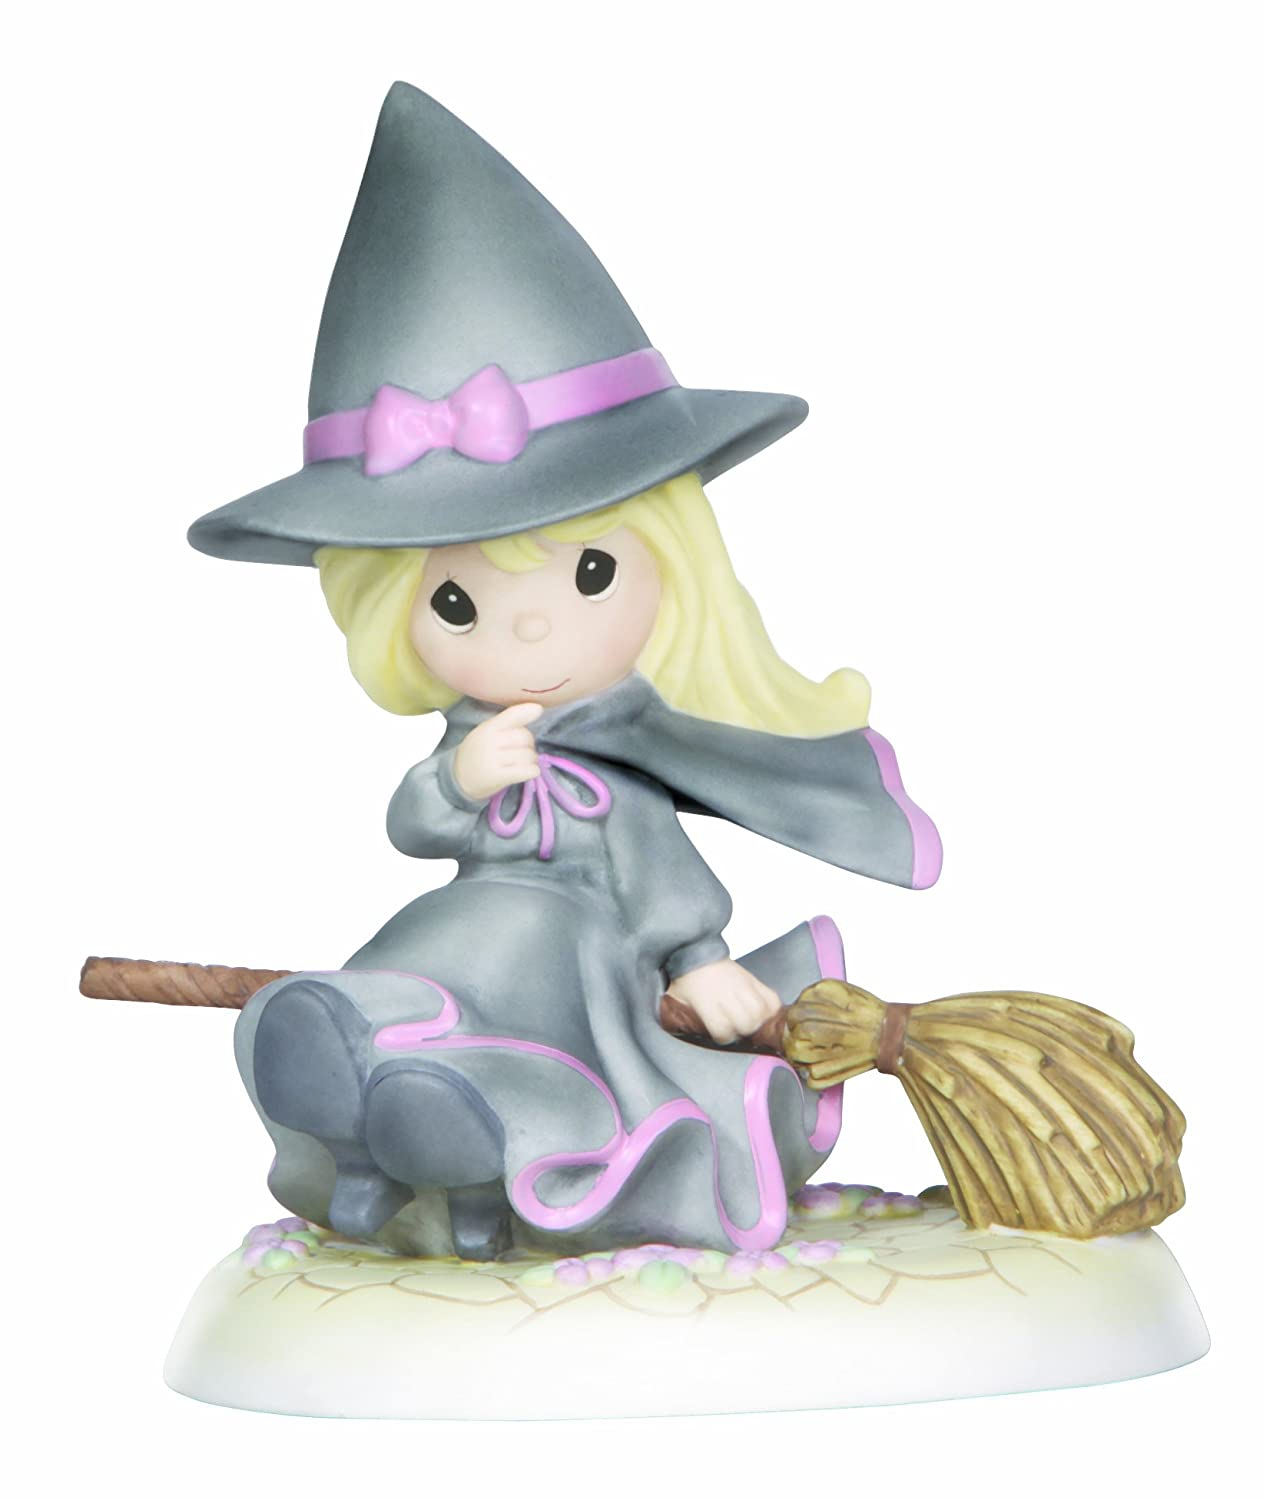 Precious Moments The Wonderful Wizard of Oz Witch Figurine statue sculpture